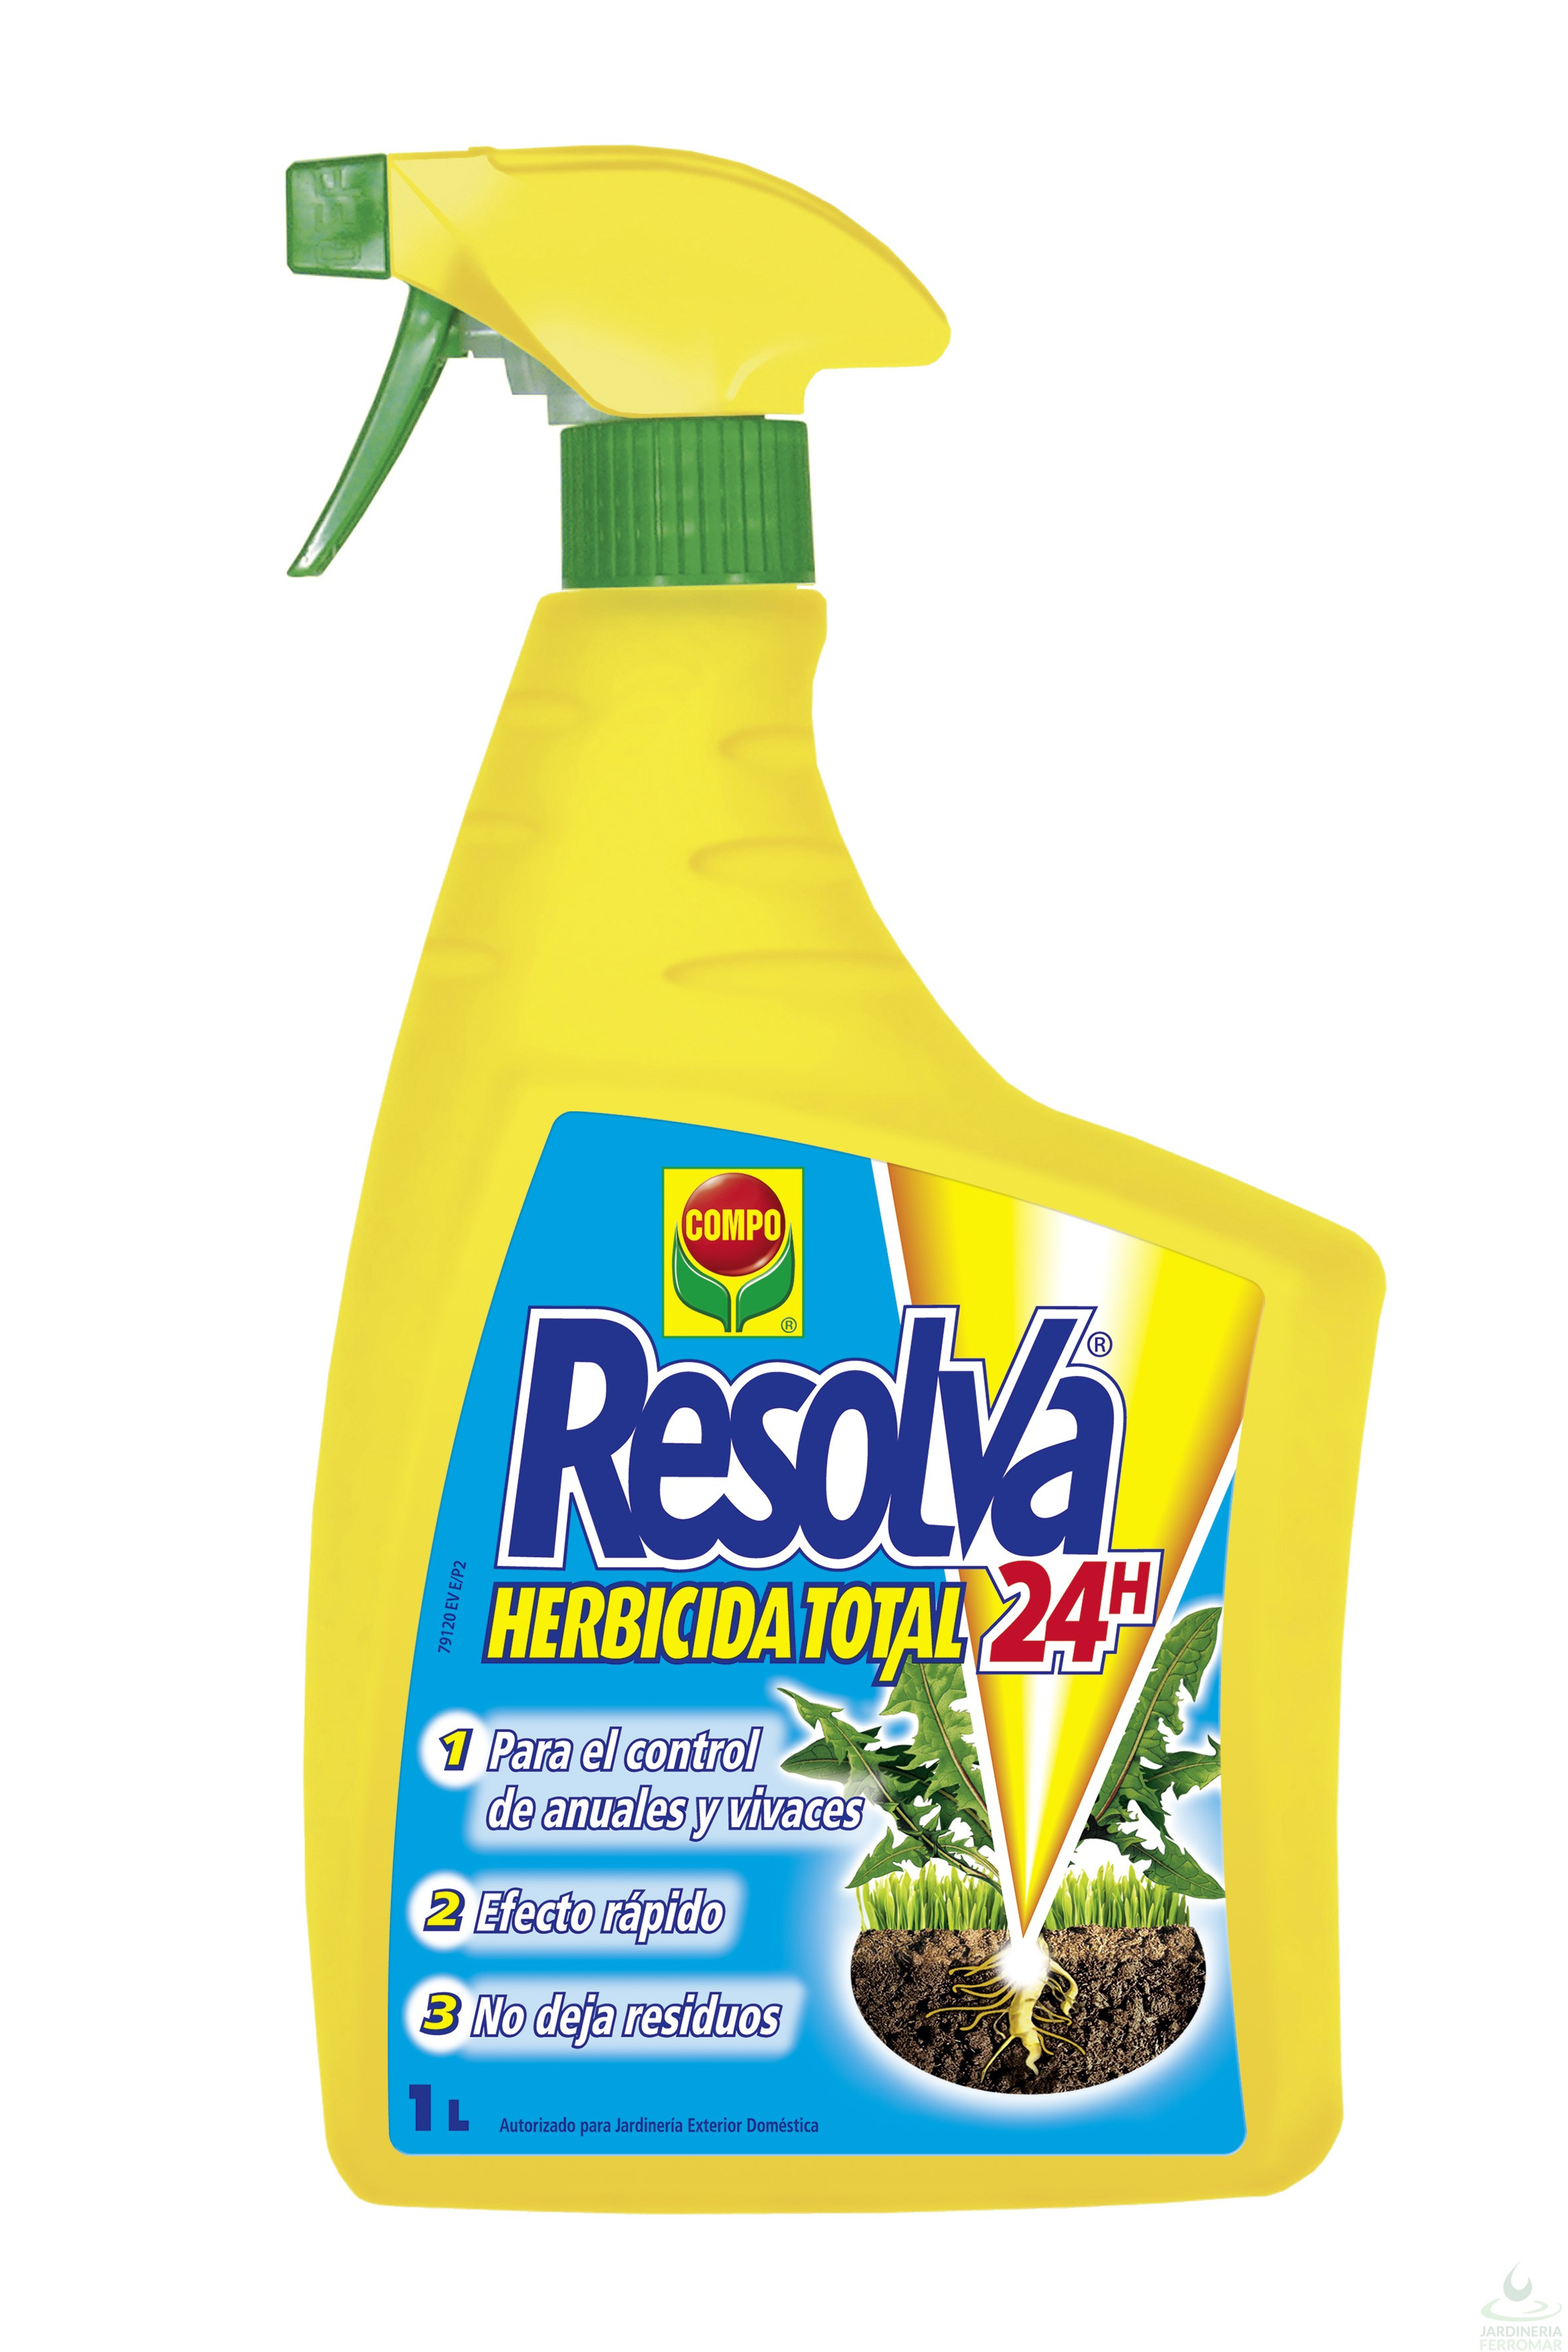 Compo Herbicida Total Resolva 24H Pistola 750 ml